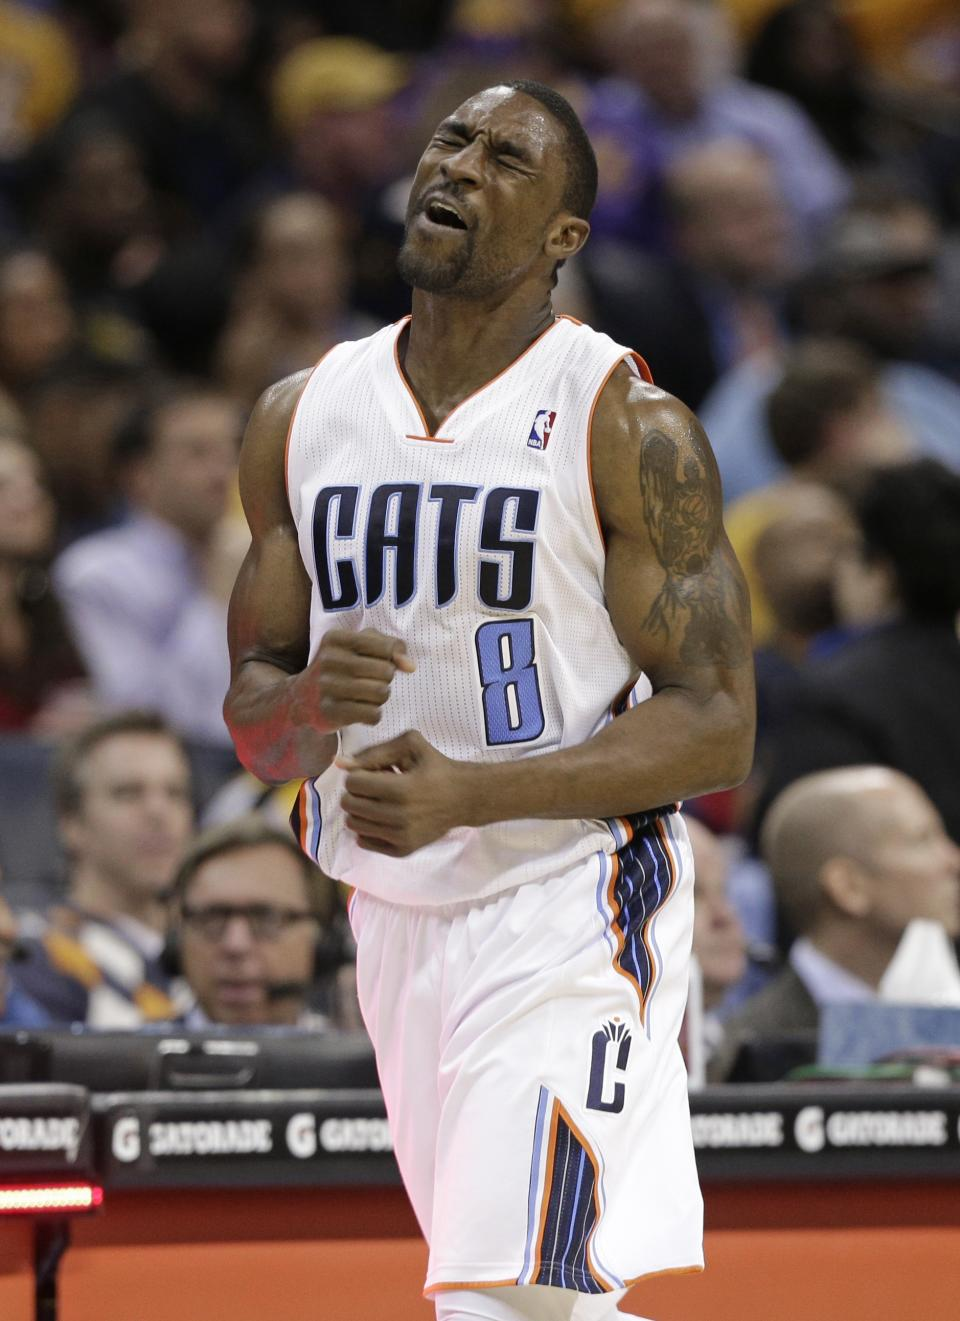 Charlotte Bobcats' Ben Gordon (8) reacts after a missed shot against the Los Angeles Lakers during the second half of an NBA basketball game in Charlotte, N.C., Friday, Feb. 8, 2013. The Lakers won 100-93. (AP Photo/Chuck Burton)